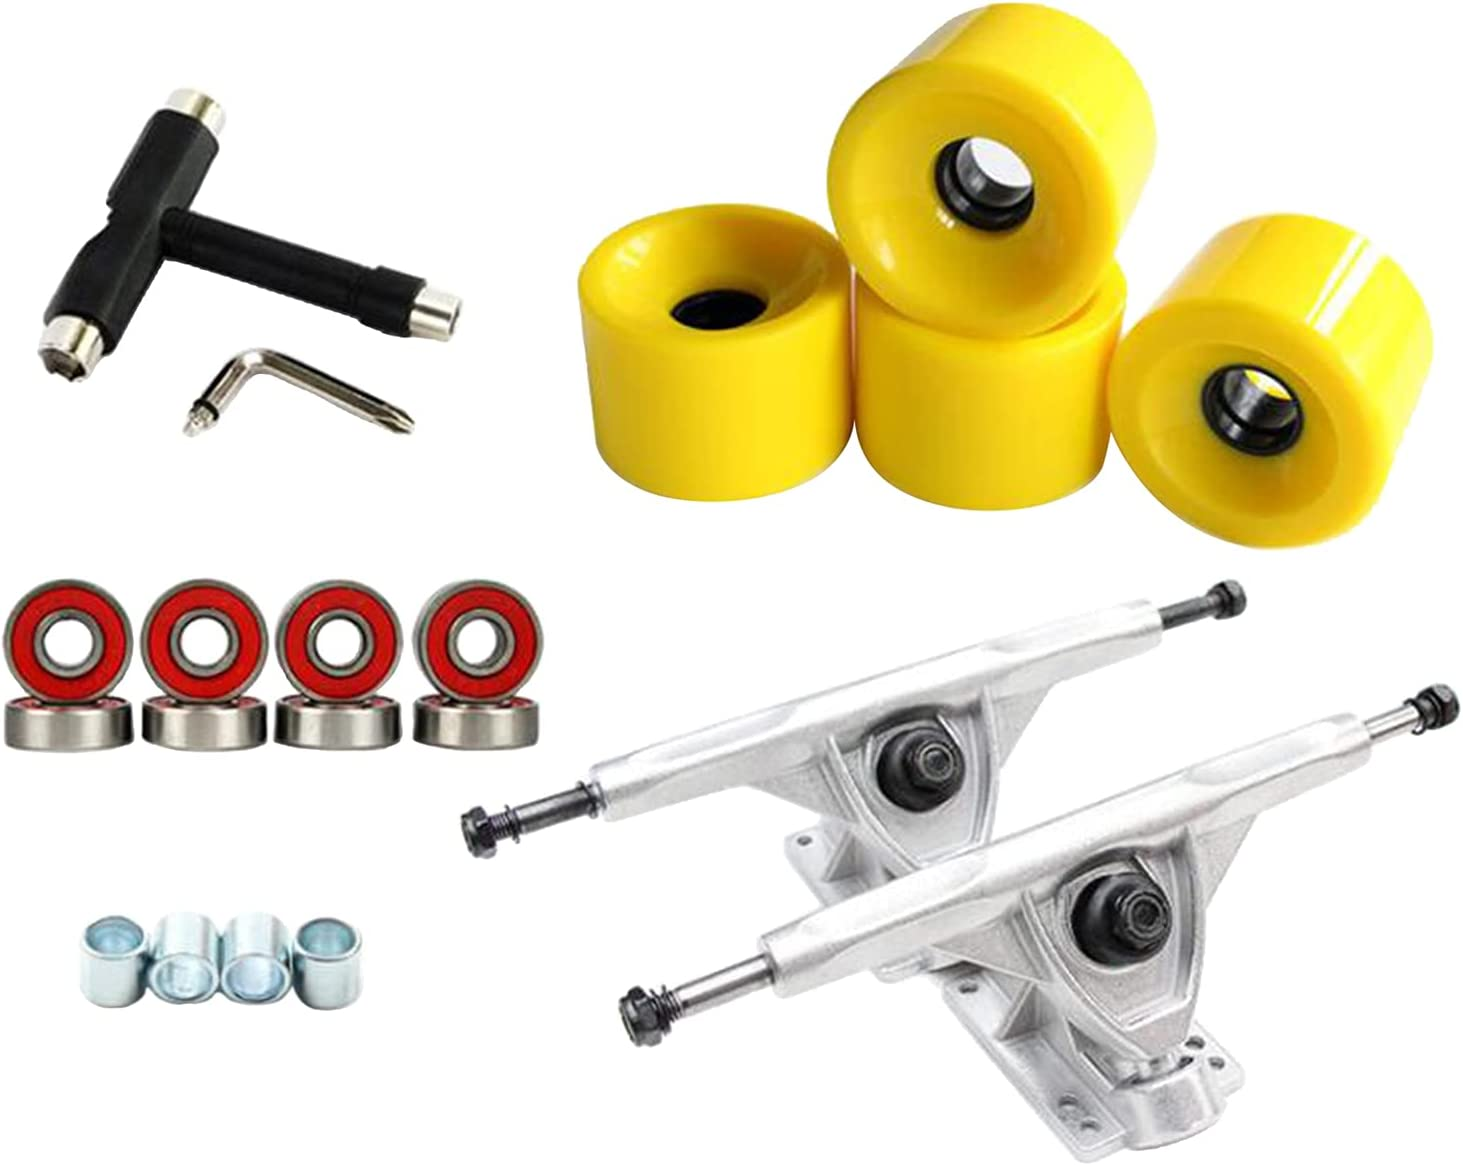 T TOOYFUL Skateboard Set Parts Large special price Trucks 4pc All items free shipping 2pcs Kit